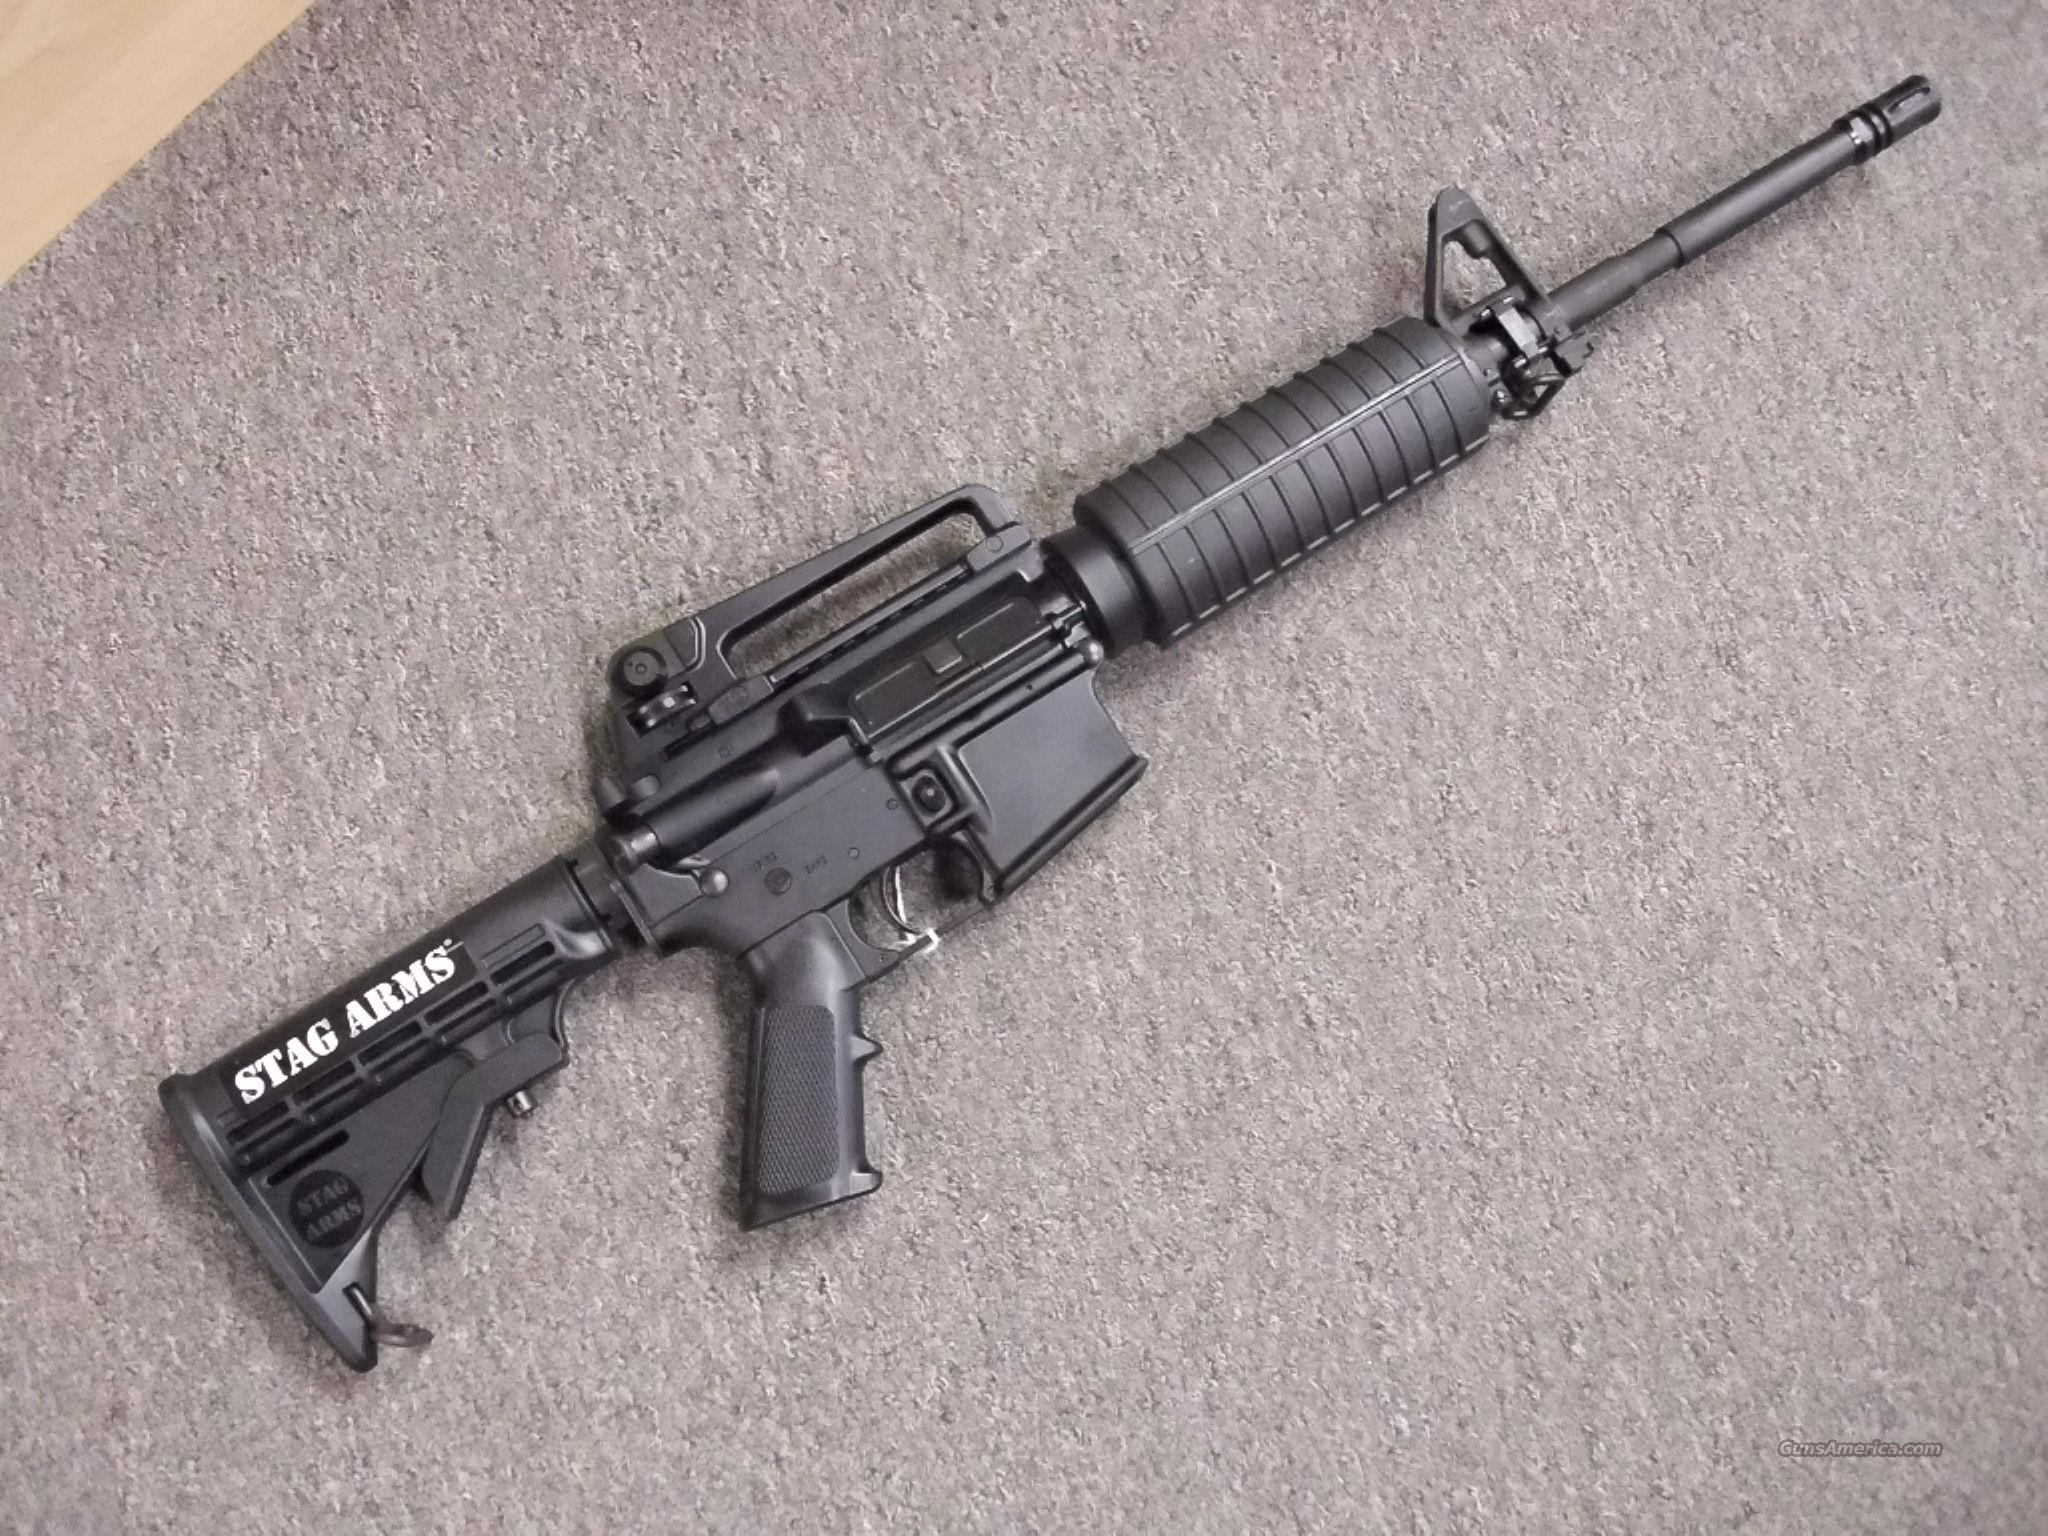 Stag ar 15 for sale : Uverse dsl